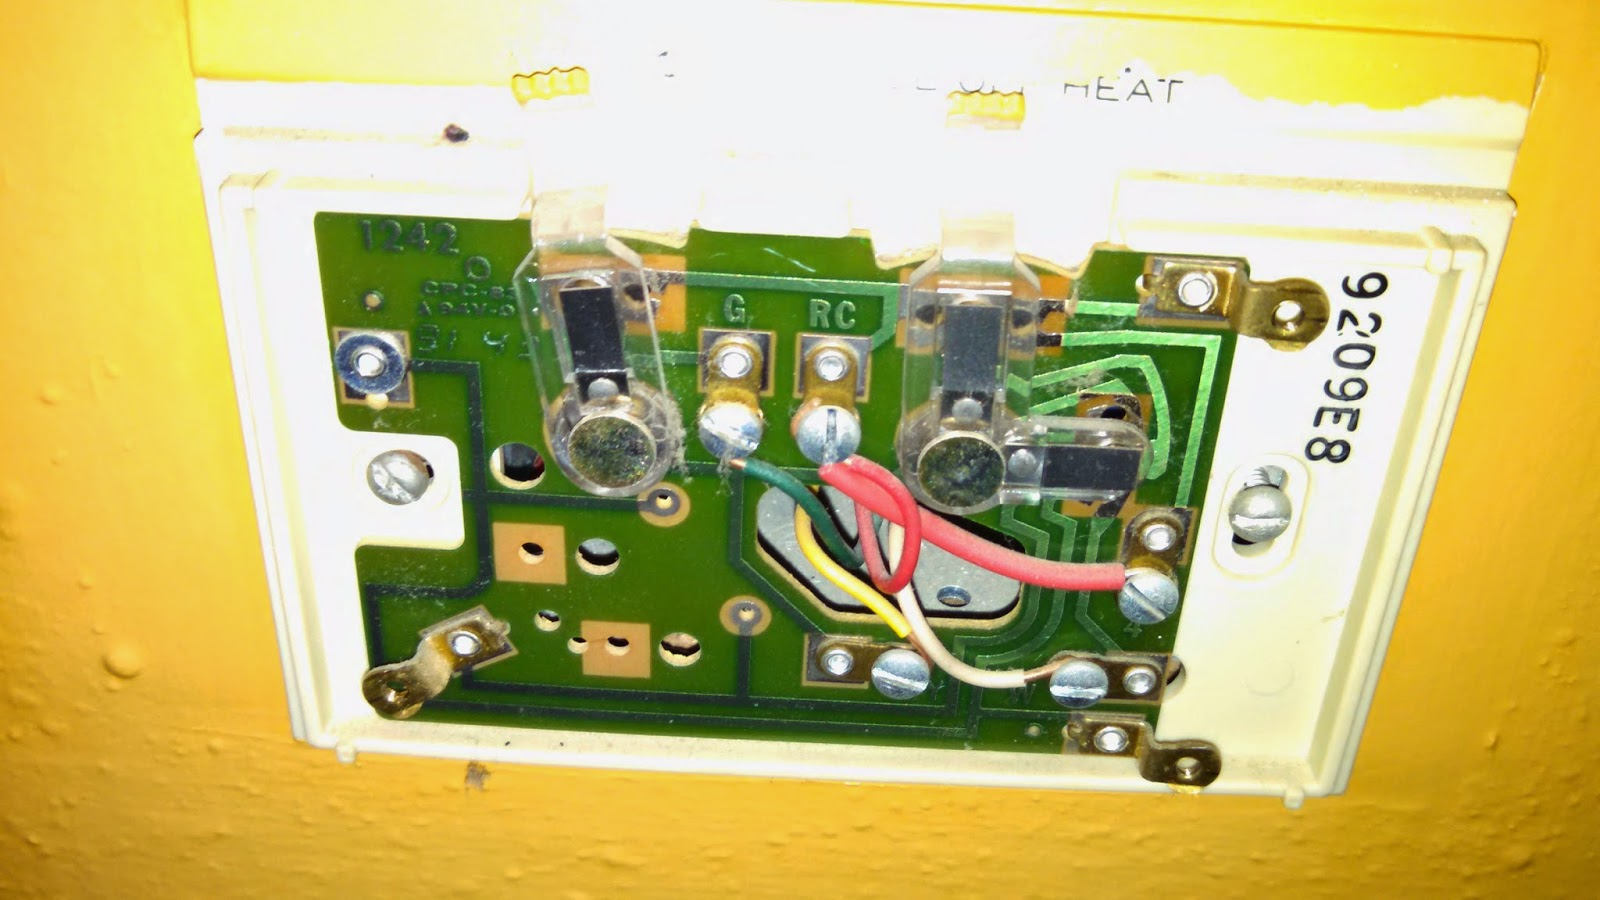 circuit card and wire connections in old thermostat image source dr penny pincher [ 1600 x 900 Pixel ]